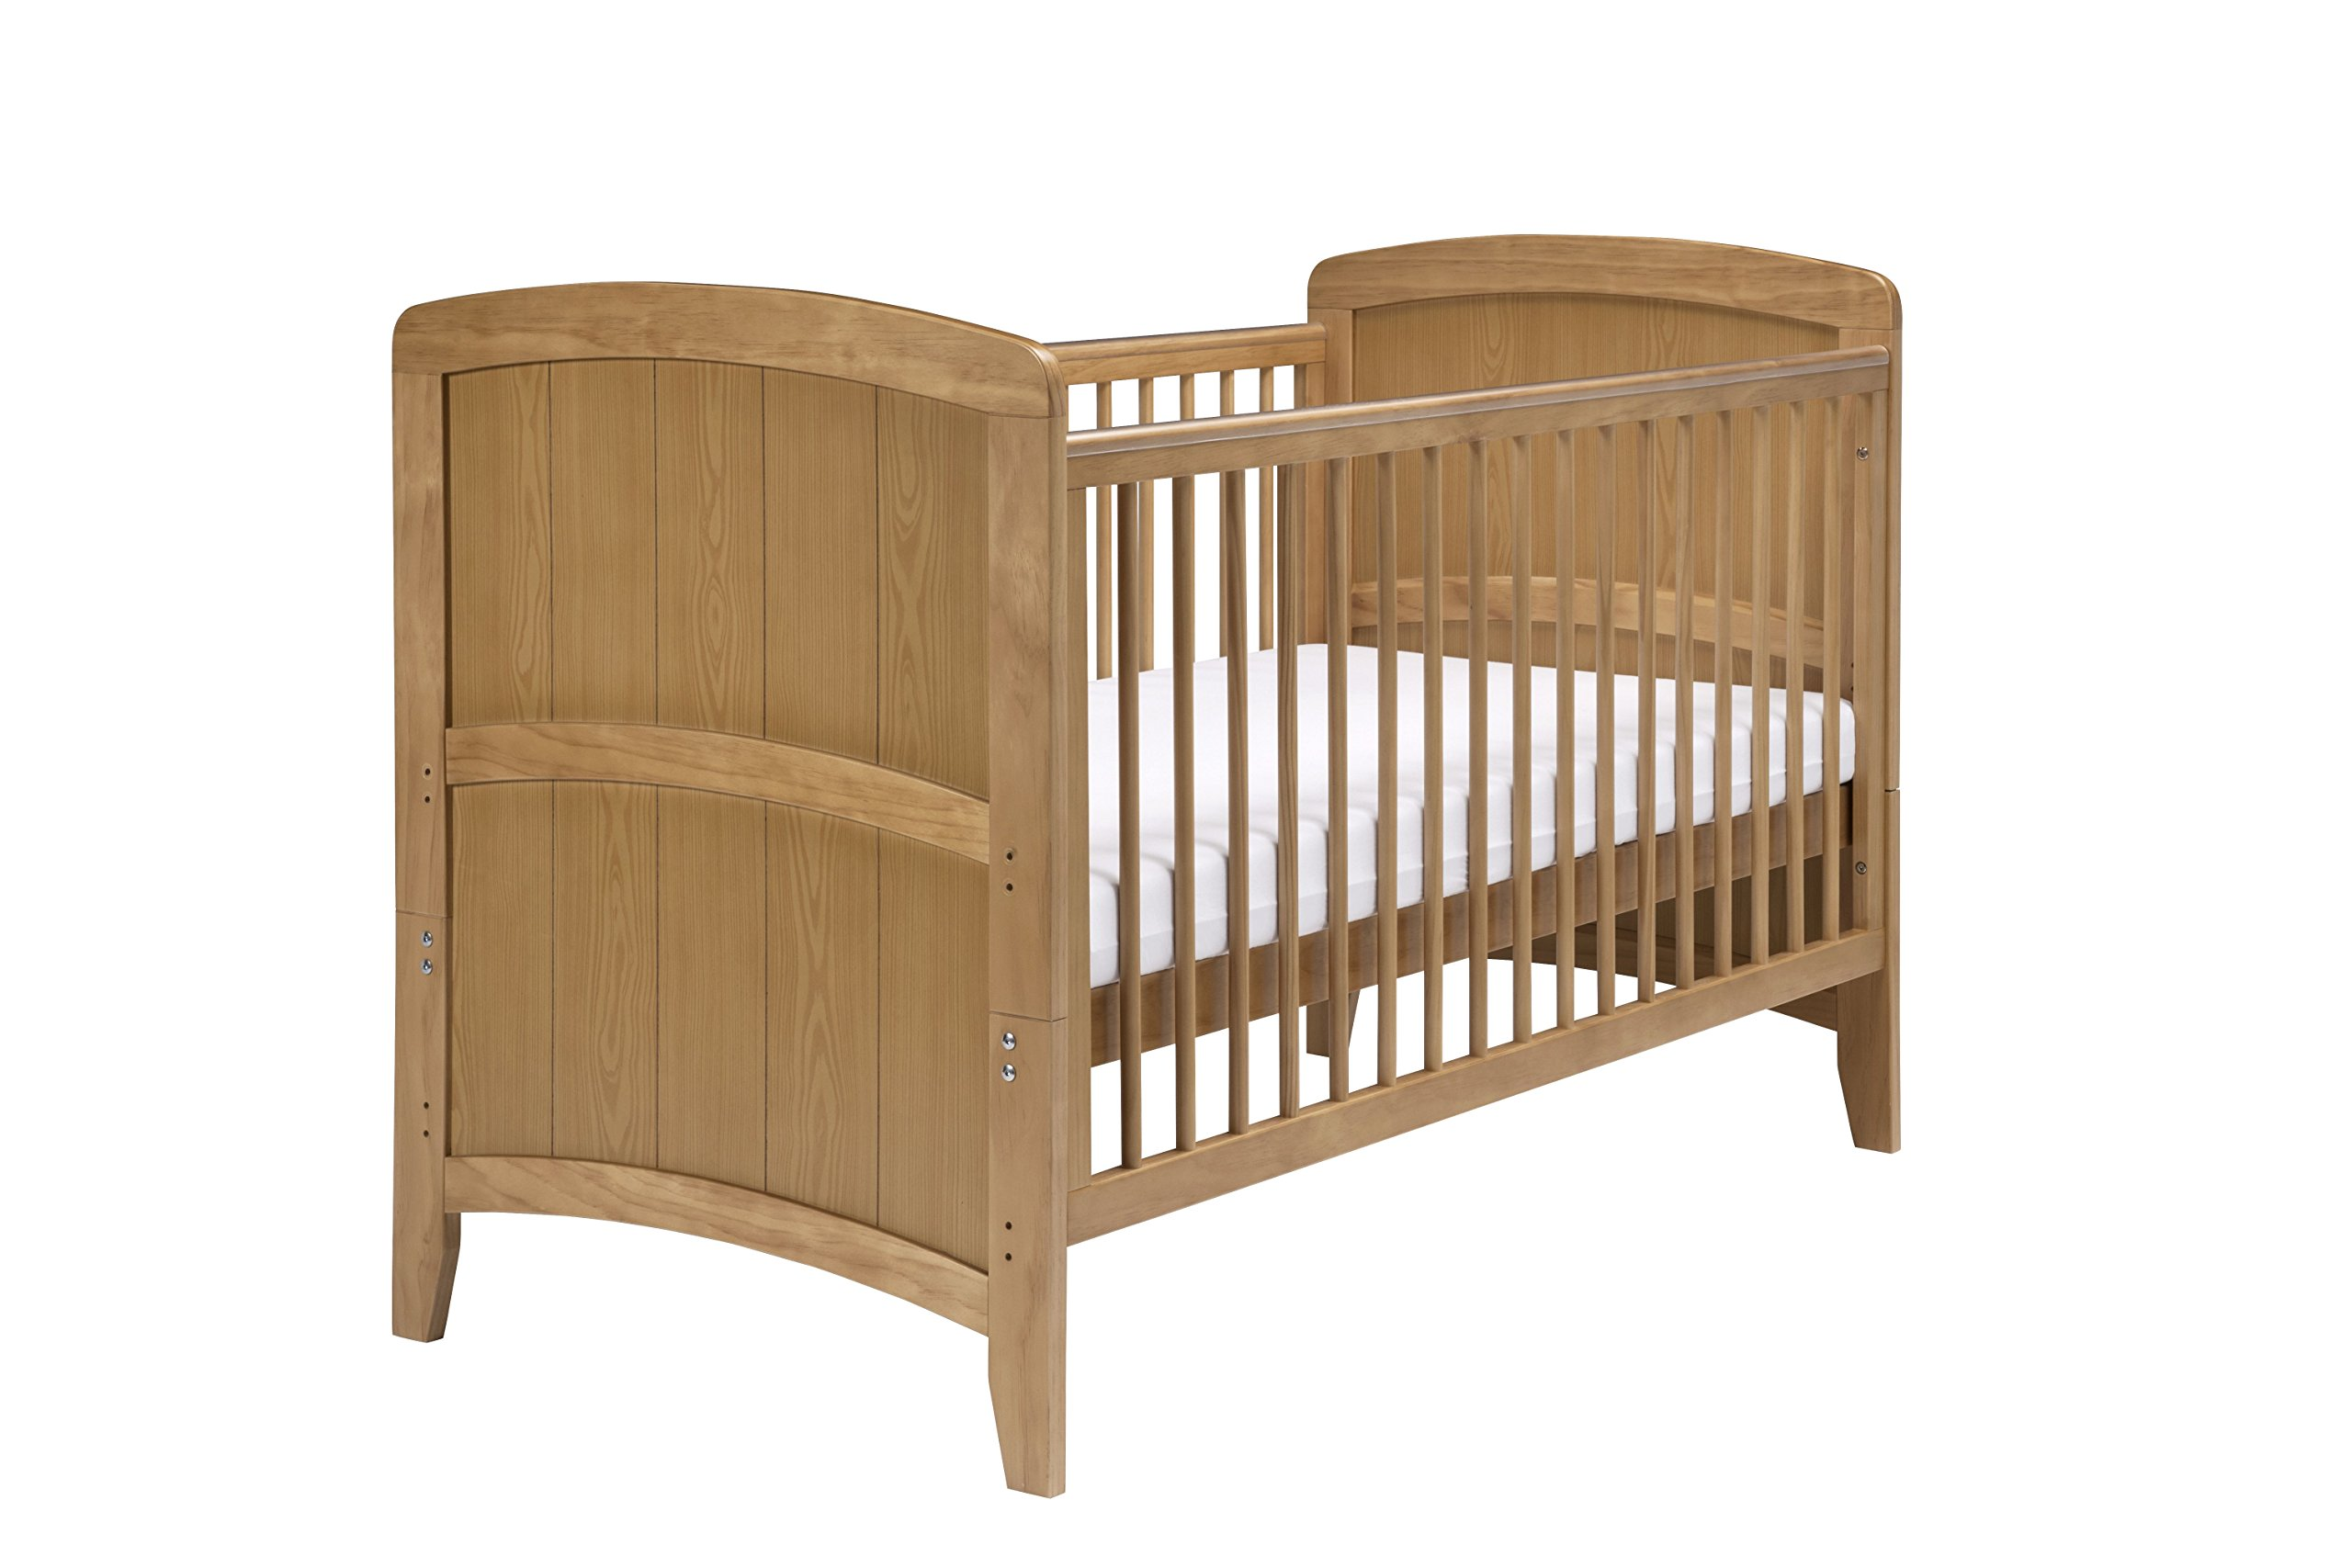 East Coast Nursery Venice Cotbed (Antique) East Coast Nursery Ltd 2 protective teething rails 2 fixed sides 2 split ends to convert to bed mode 1